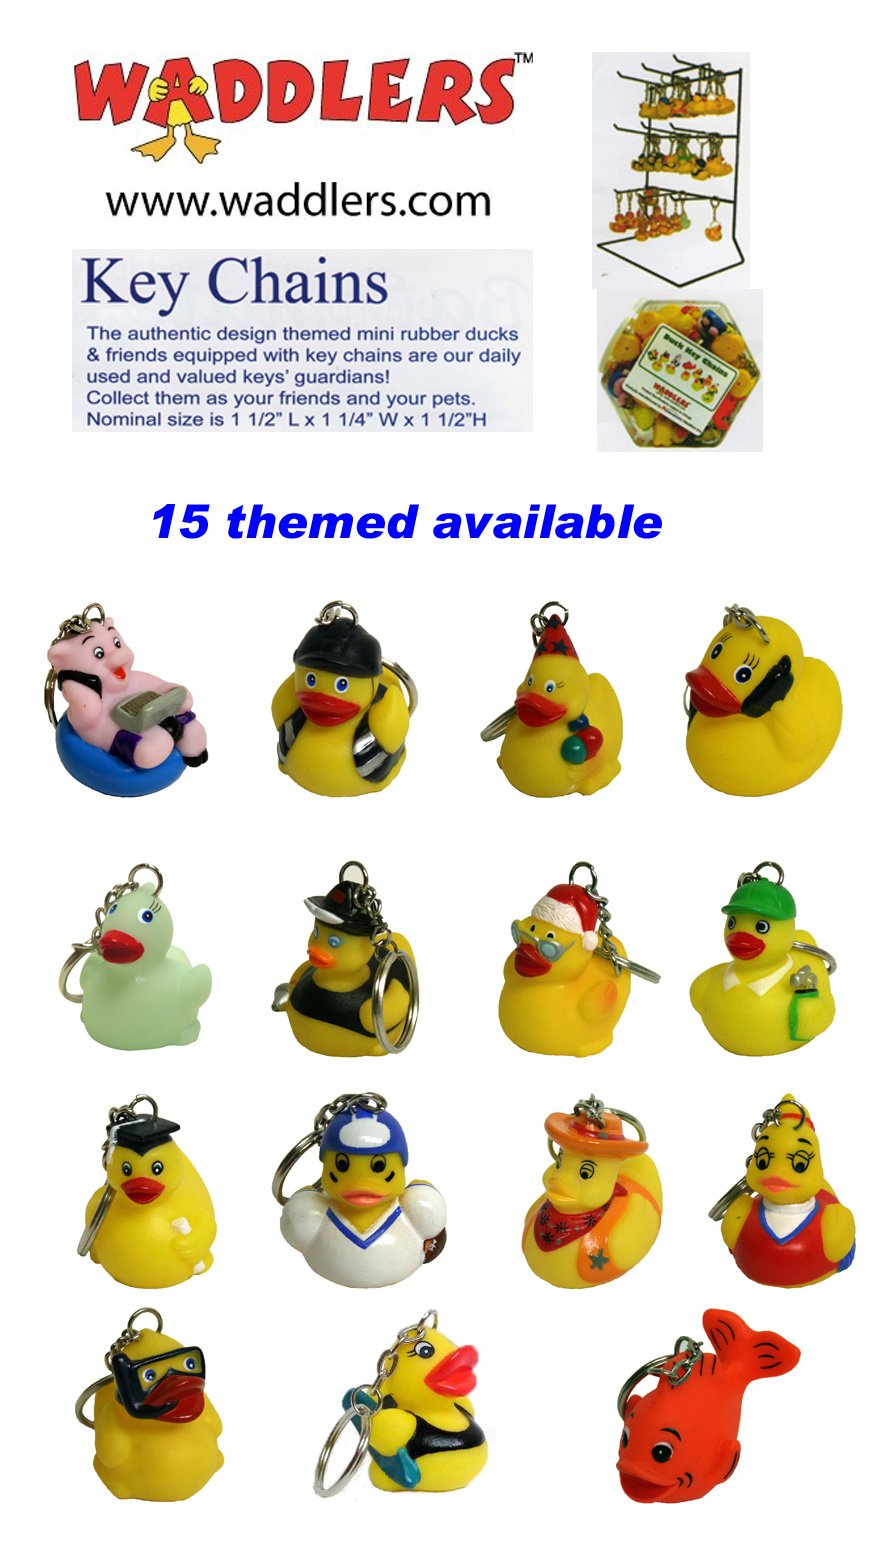 Hockey Rubber Ducks , Waddlers Brand, Bulk Pack 6,12,24,48,96 Pcs., Bath Rubber Toy Ducky Birthday Gift-all Depts. Hockey Player Deluxe Gift QTY (96) by Waddlers (Image #6)